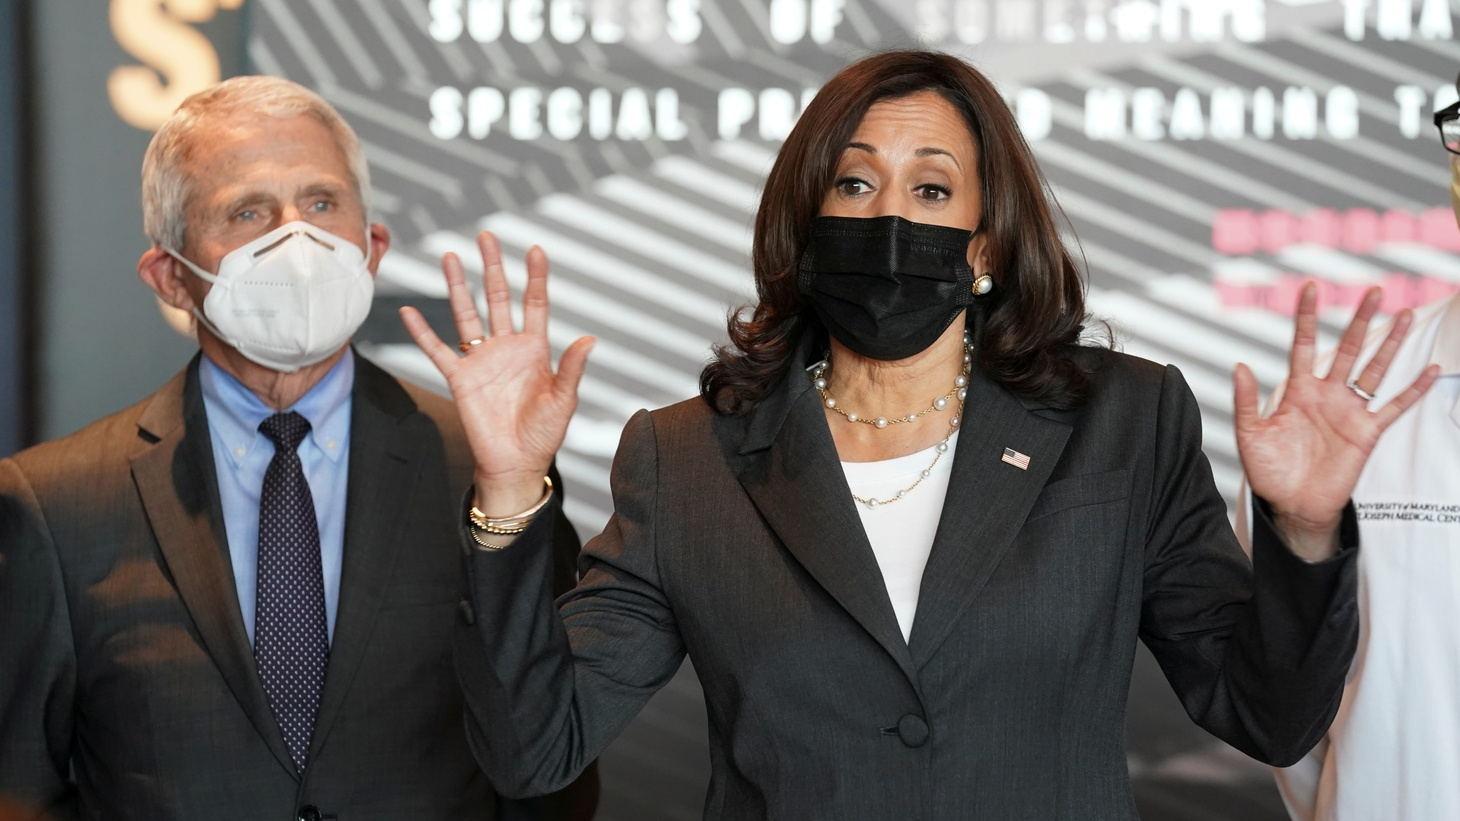 U.S. Vice President Kamala Harris speaks as Dr. Anthony Fauci stands at her side while touring a COVID-19 mass vaccination site at M&T Bank Stadium in Baltimore, Maryland, U.S., April 29, 2021.